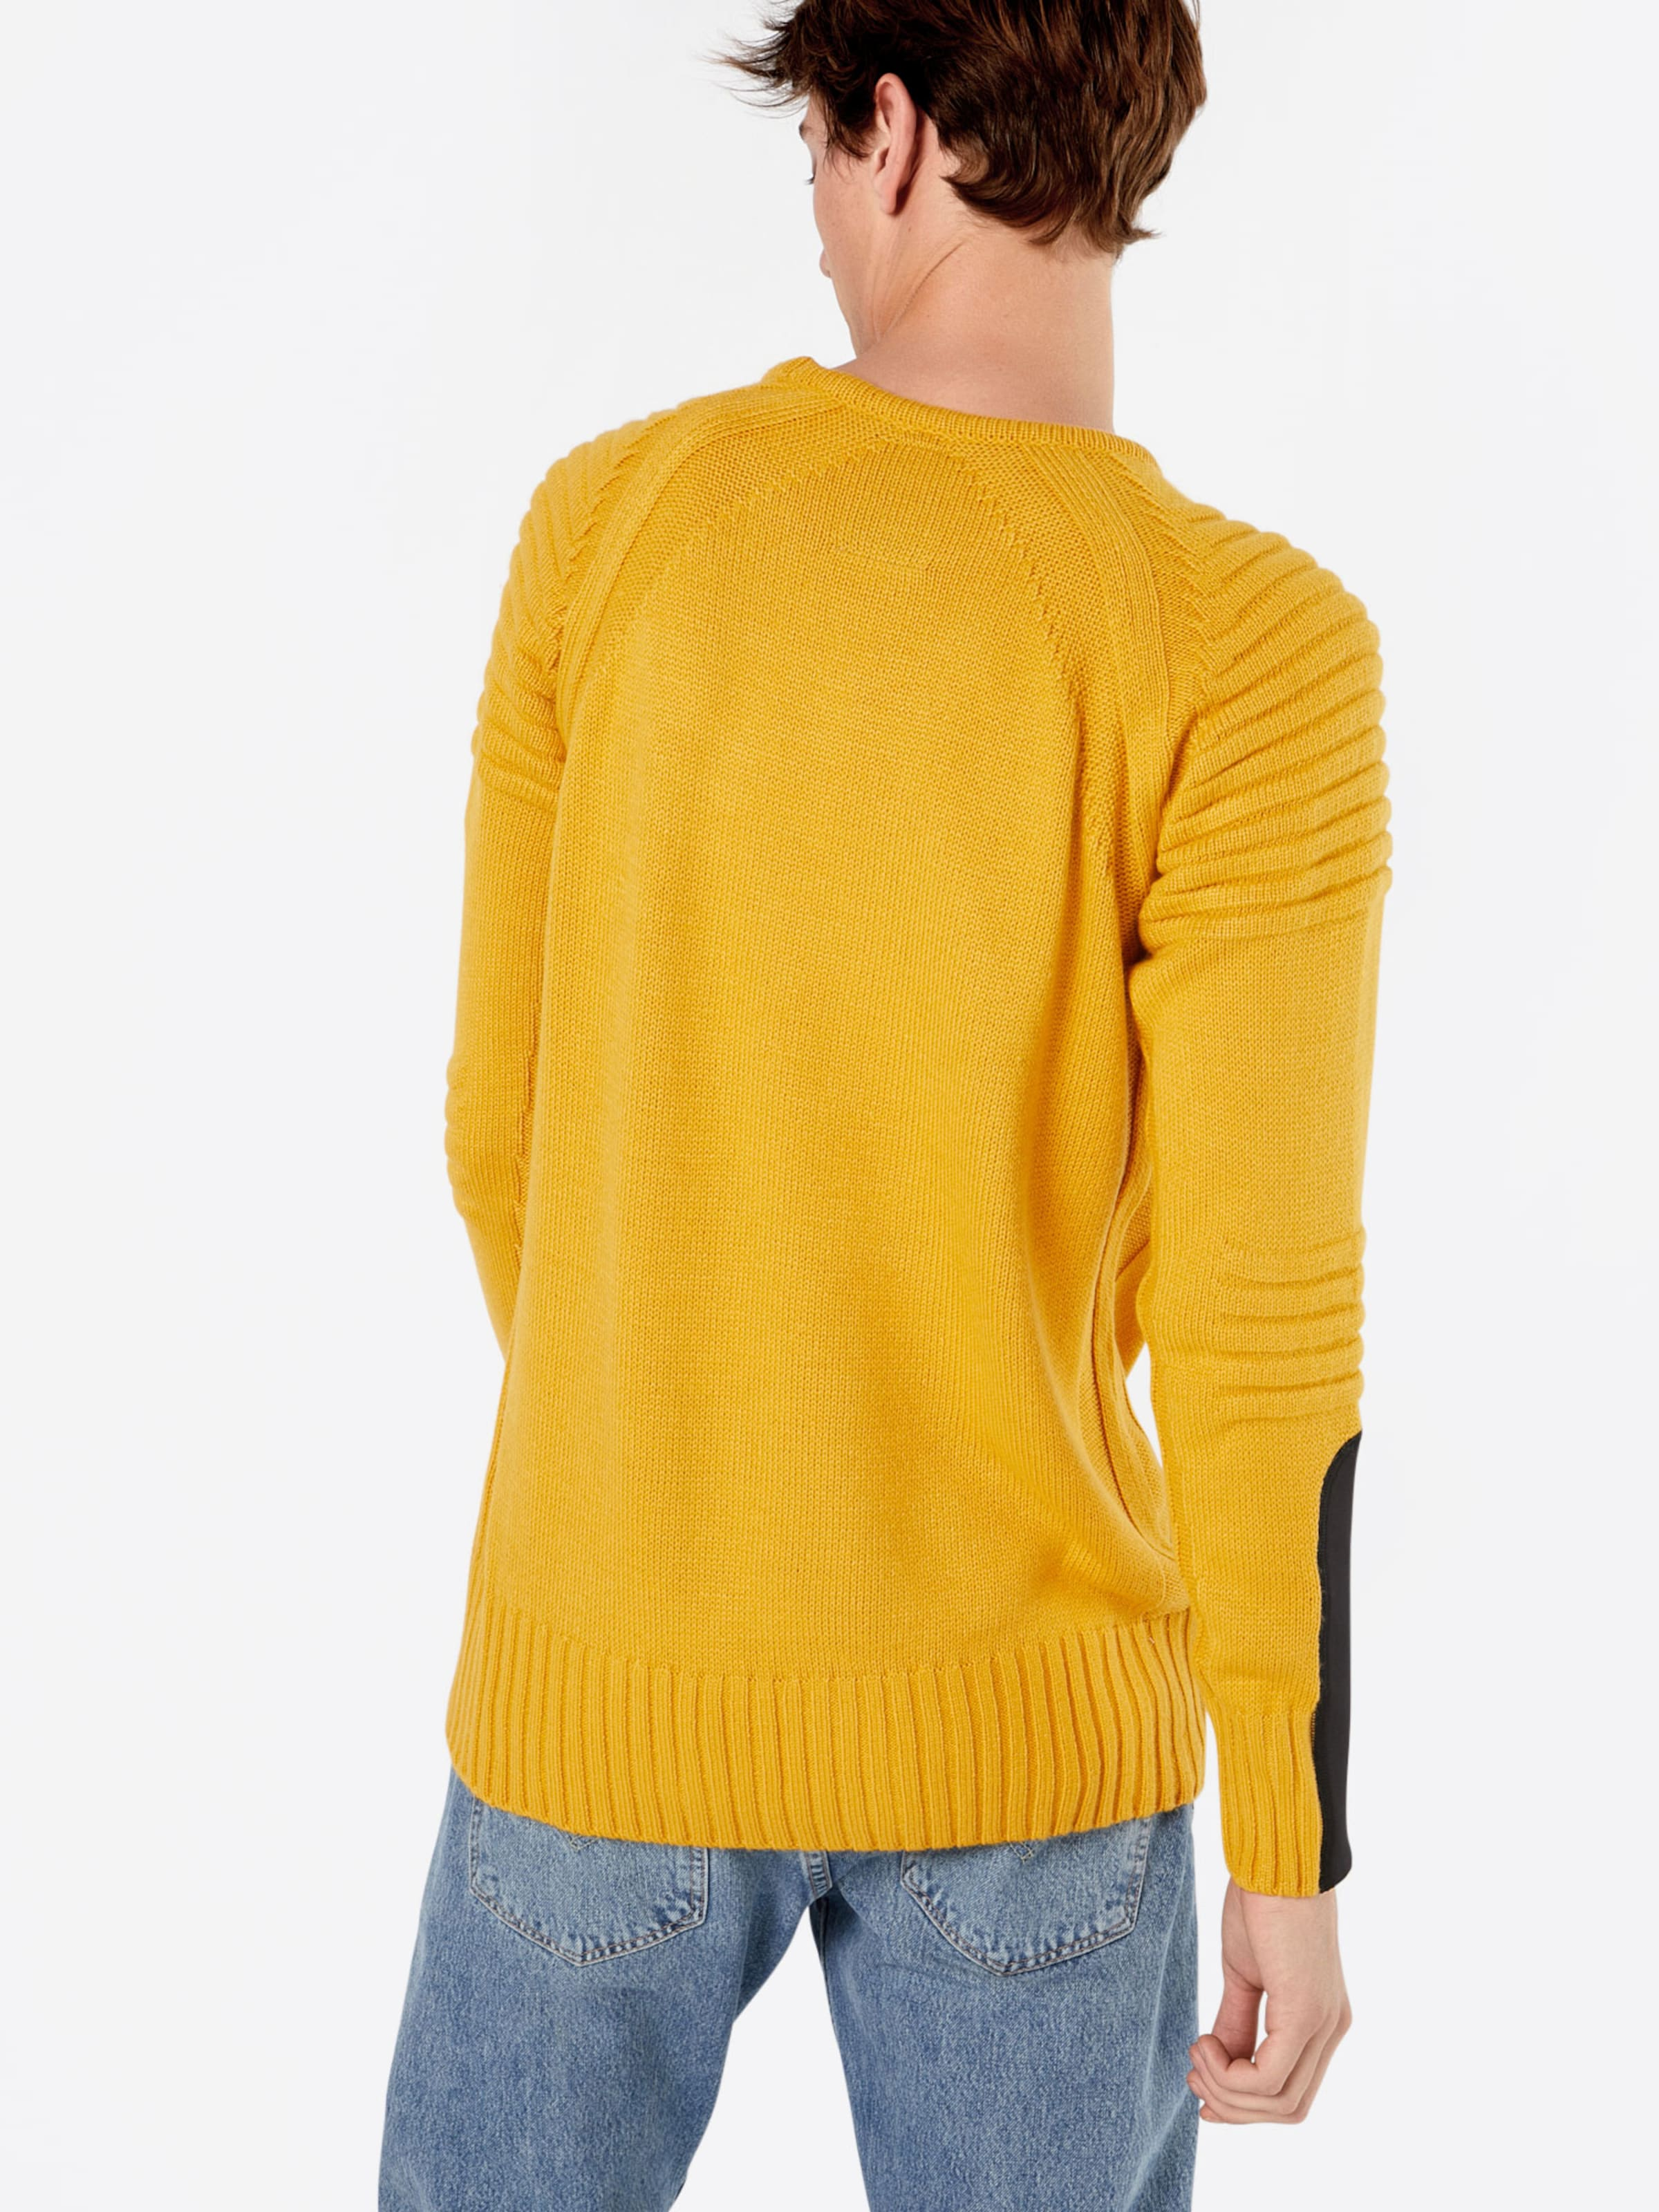 Key 'CUBE' Largo Strickpullover 'CUBE' Largo Key Strickpullover Largo Key RZWnHq5za